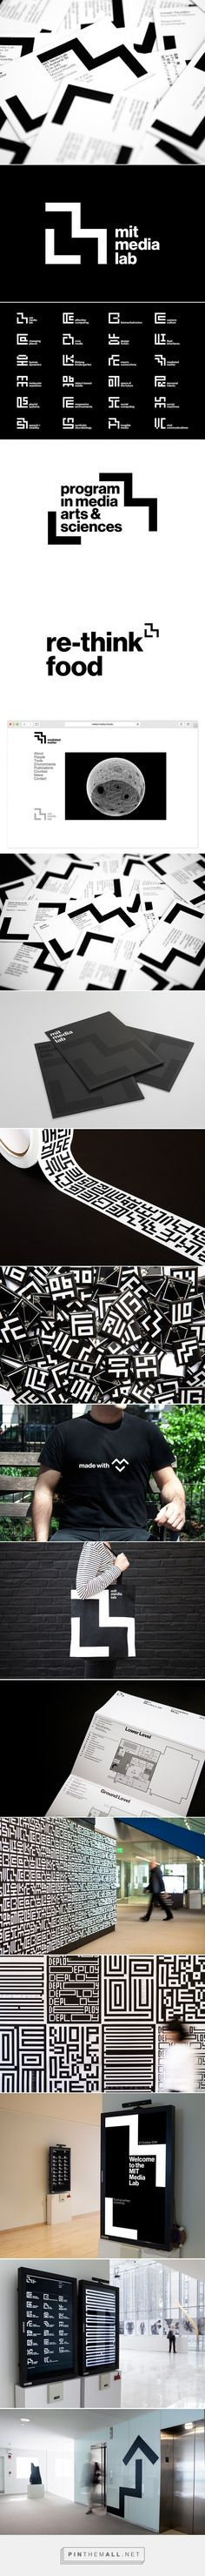 The new MIT media lab identity by Pentagram | Michael Bierut